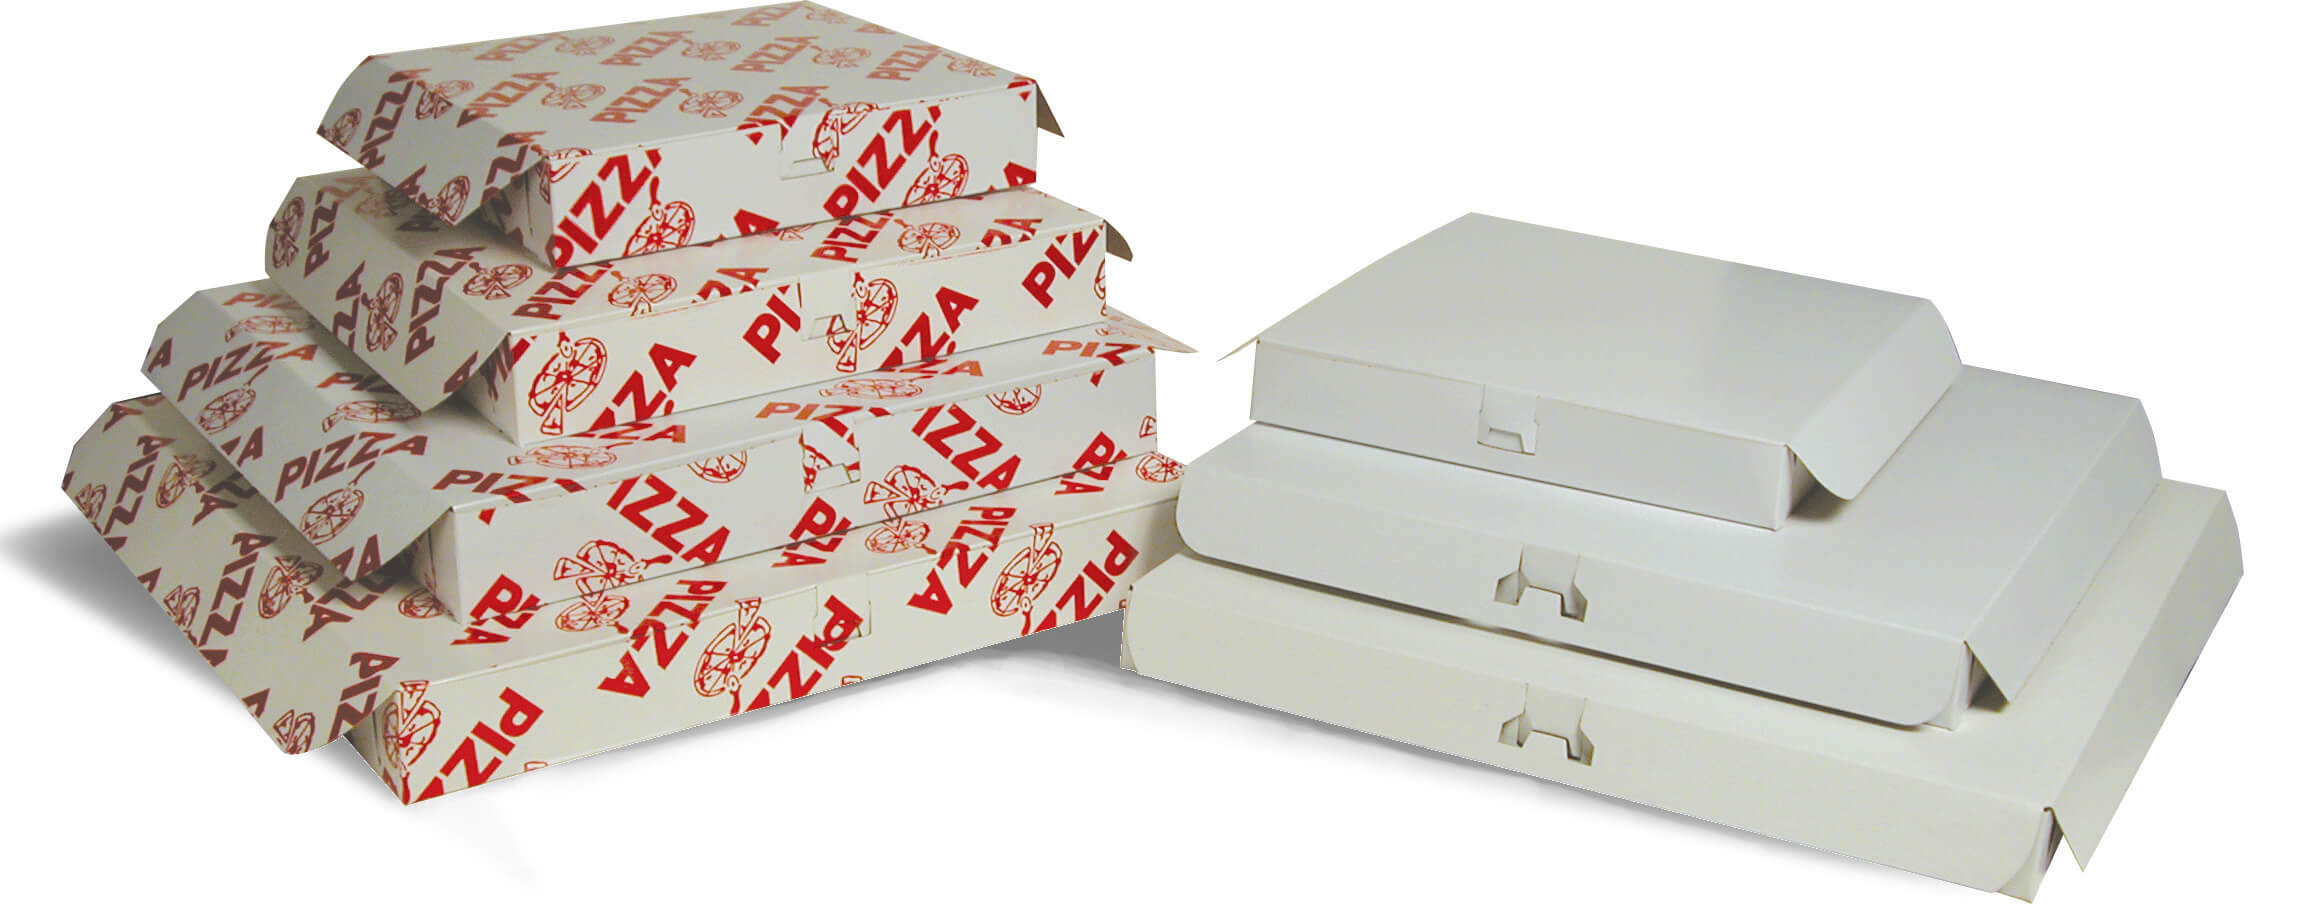 Two stacks of white and red pizza boxes.